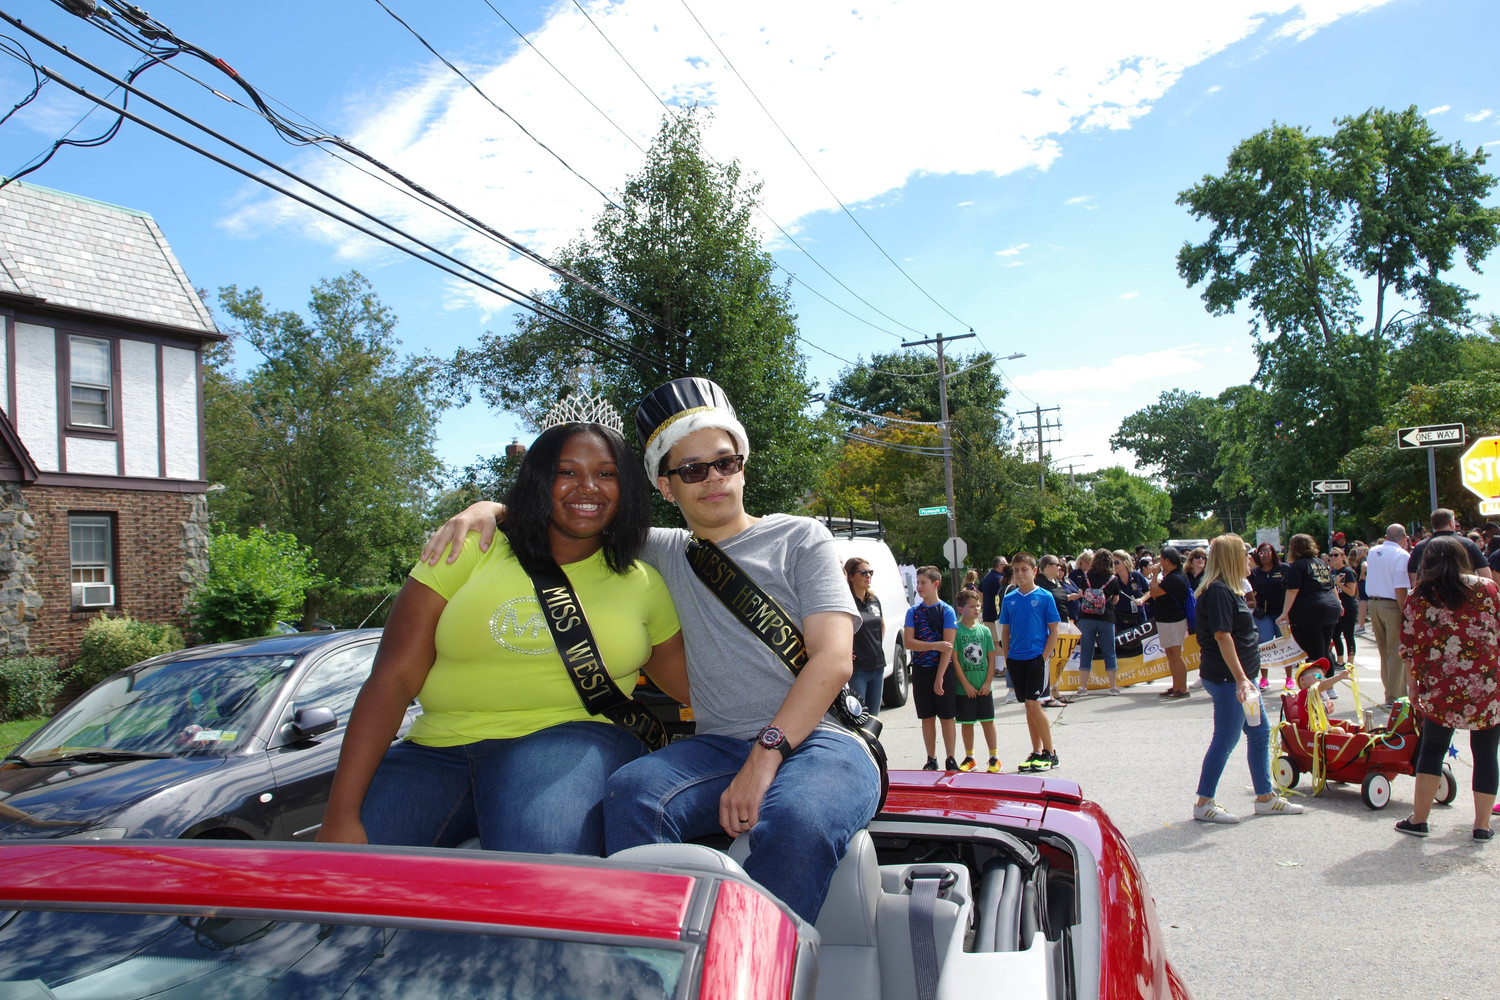 Mr. and Mrs. West Hempstead, Robert Bethune and Autumn Collins, cruised down Hempstead Avenue in a convertible Mustang during West Hempstead High School's Homecoming parade on Saturday.